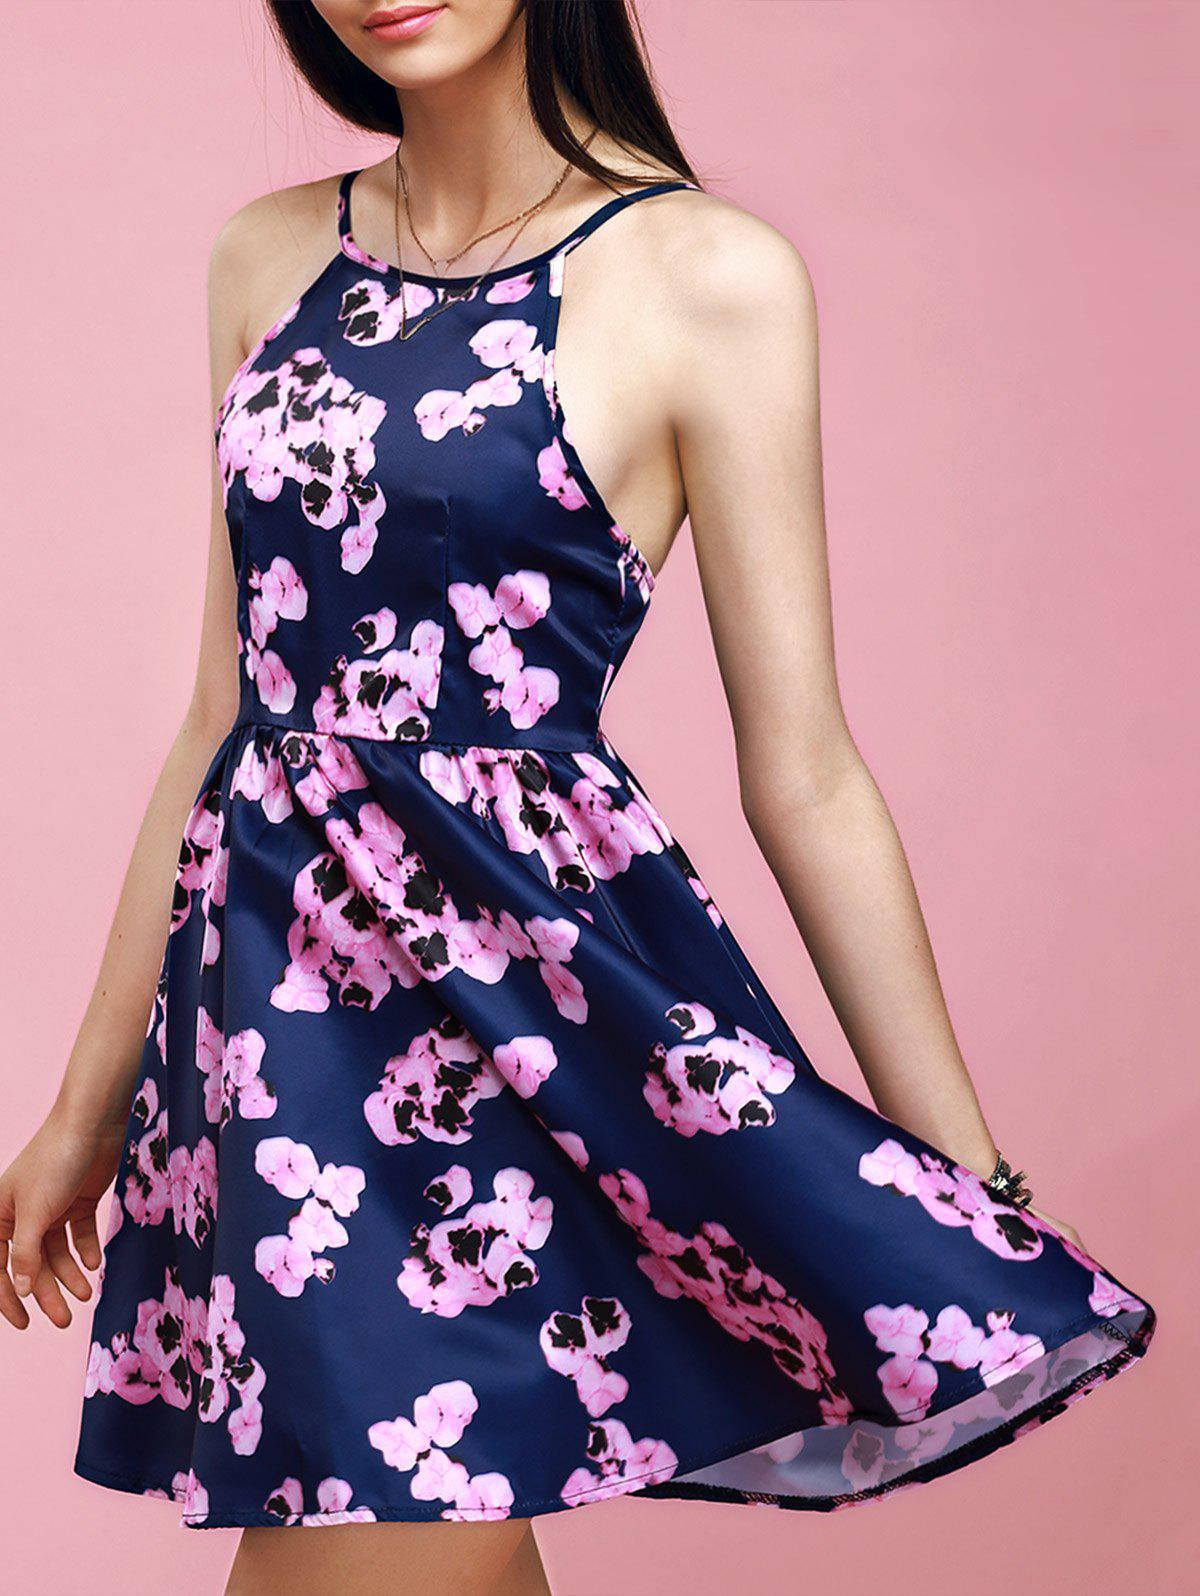 Youthful Flavor Backless Floral Print Dress